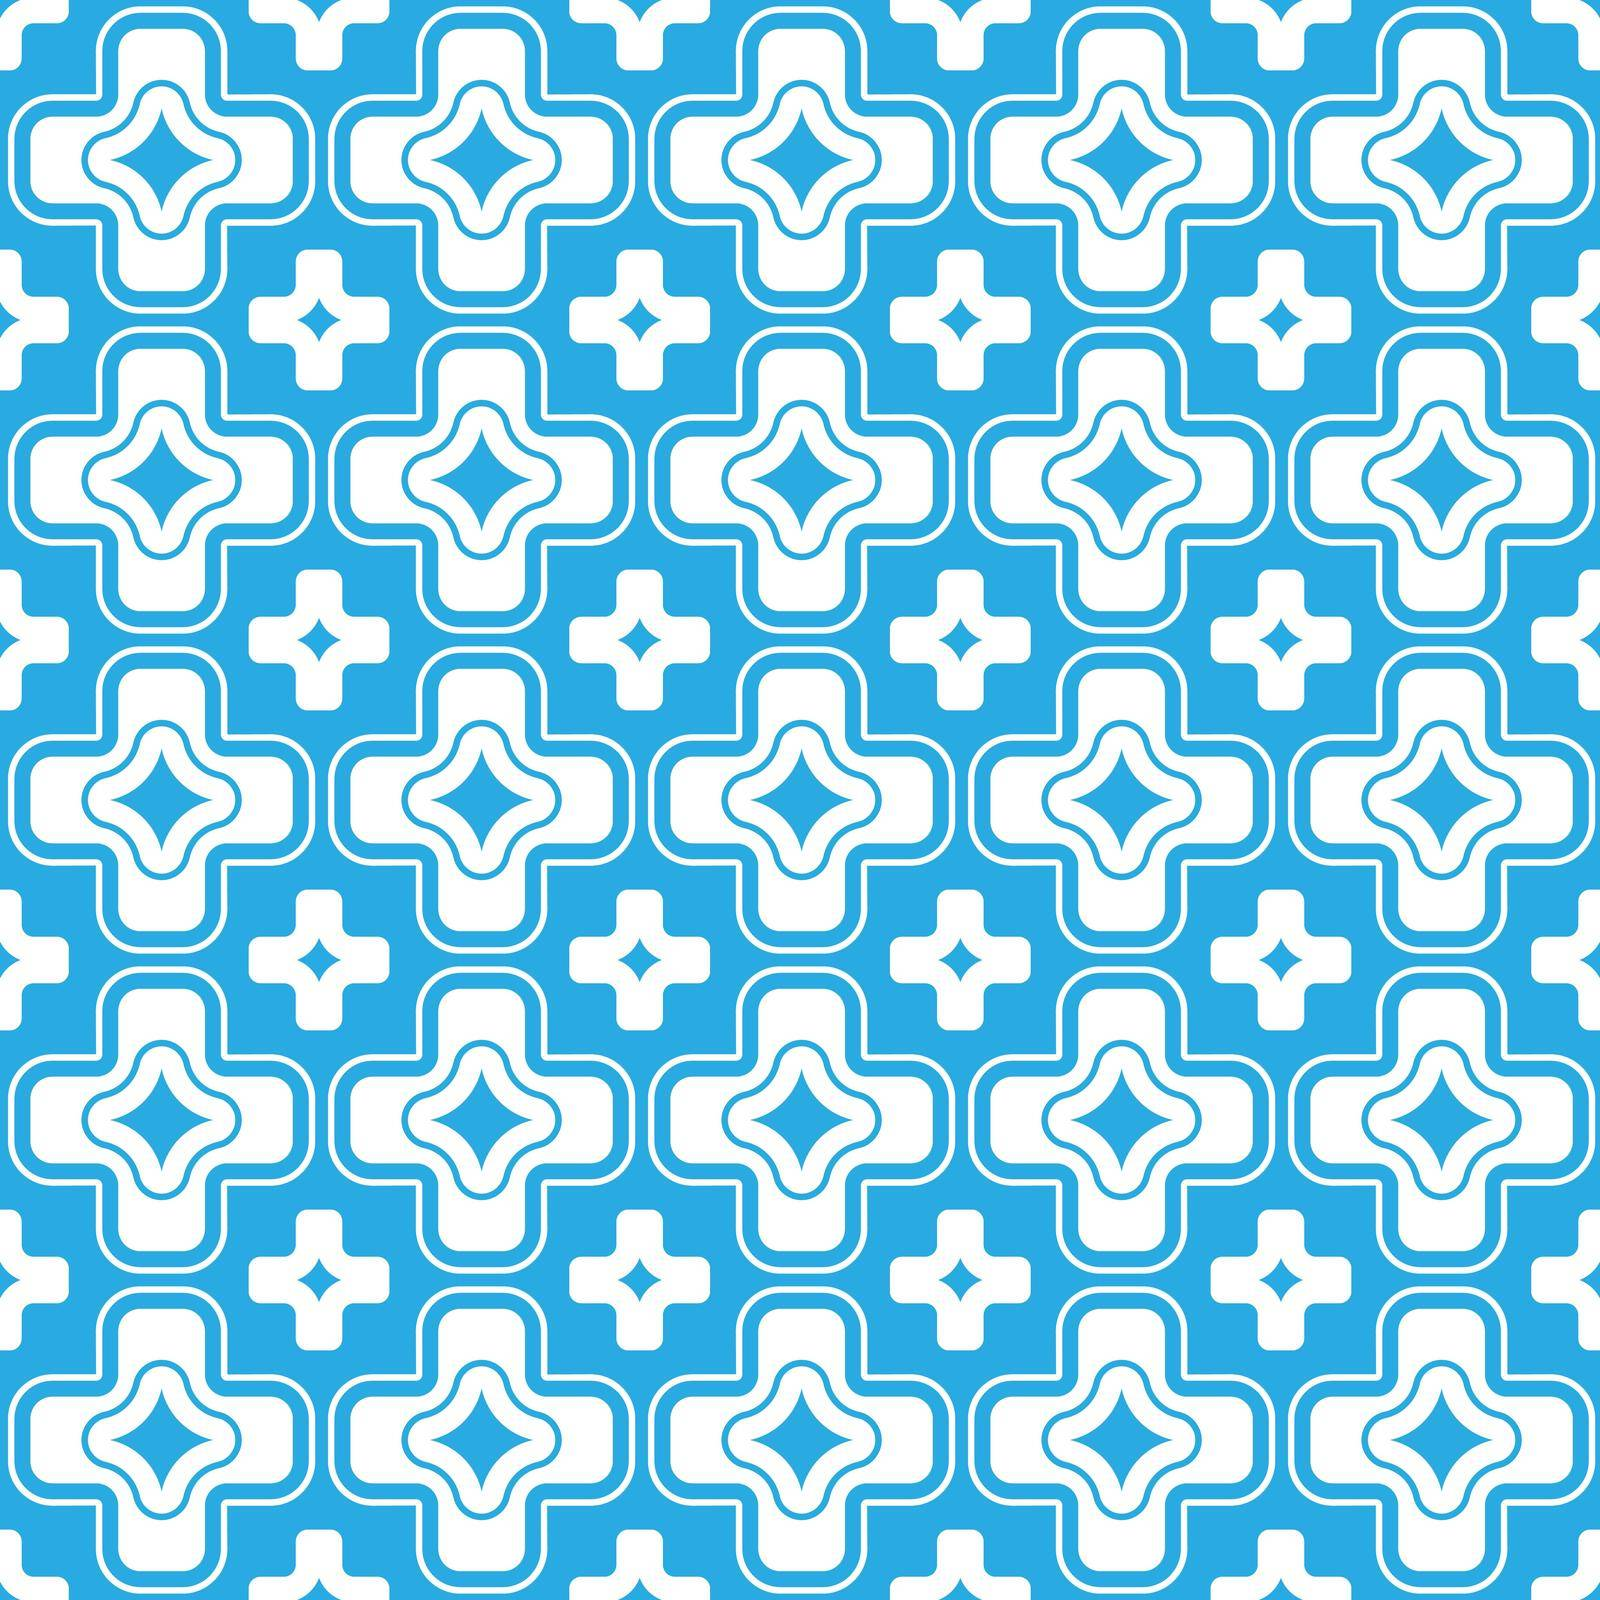 Seamless abstract pattern for texture, textiles, and simple backgrounds. Flat Style